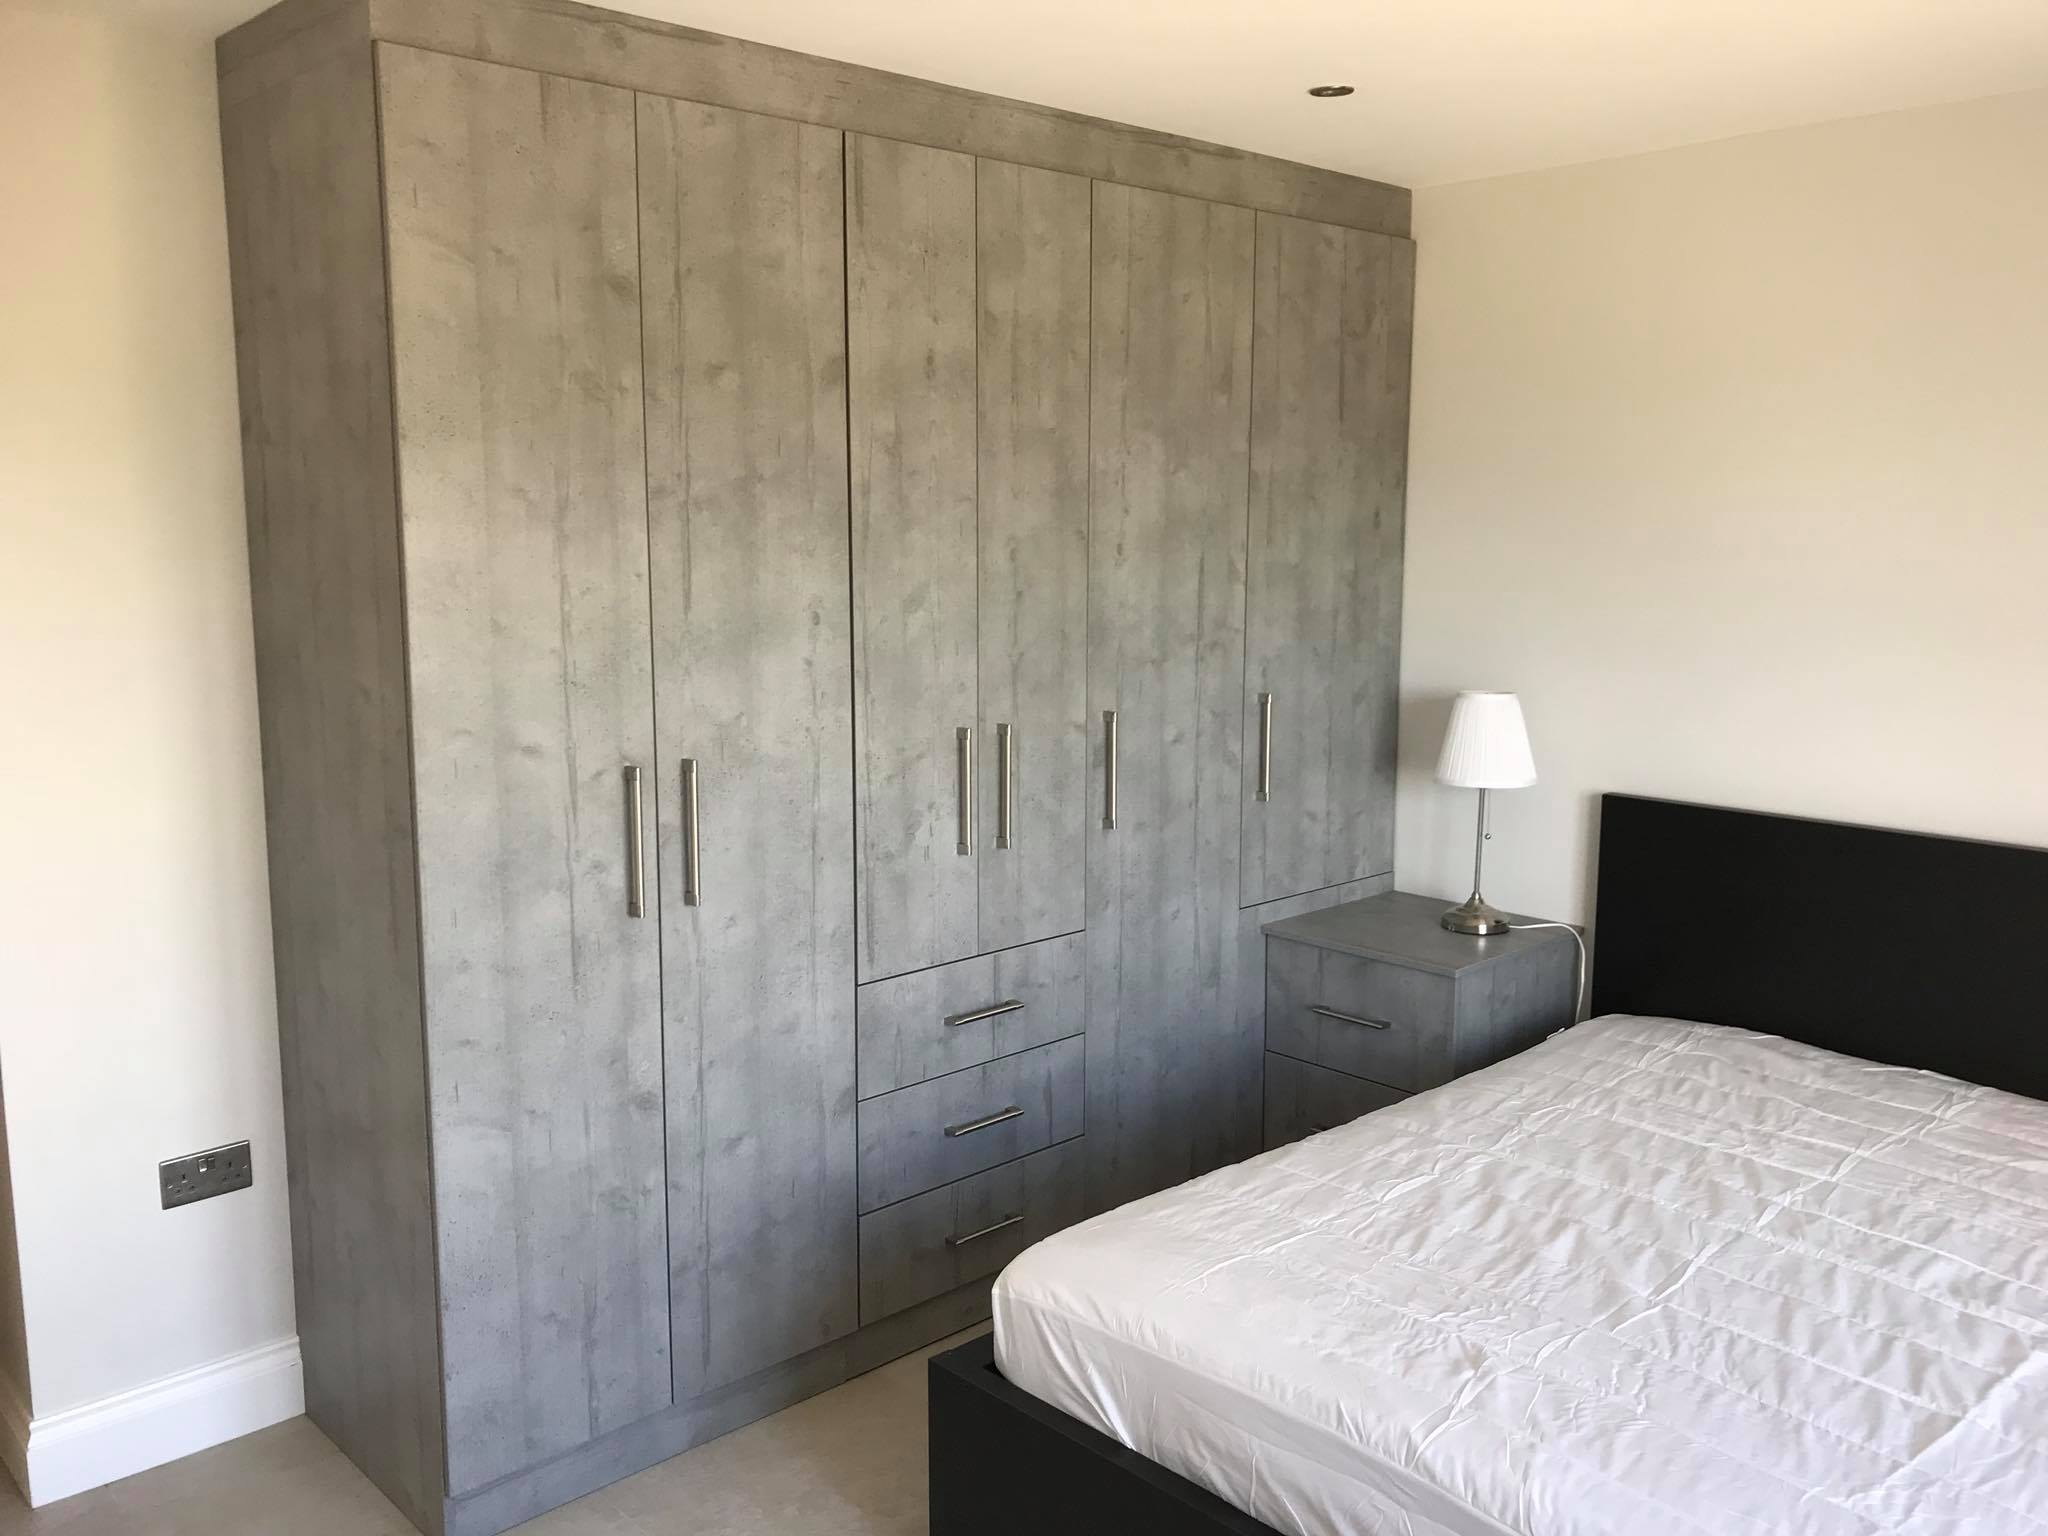 Bespoke T and S Bedrooms